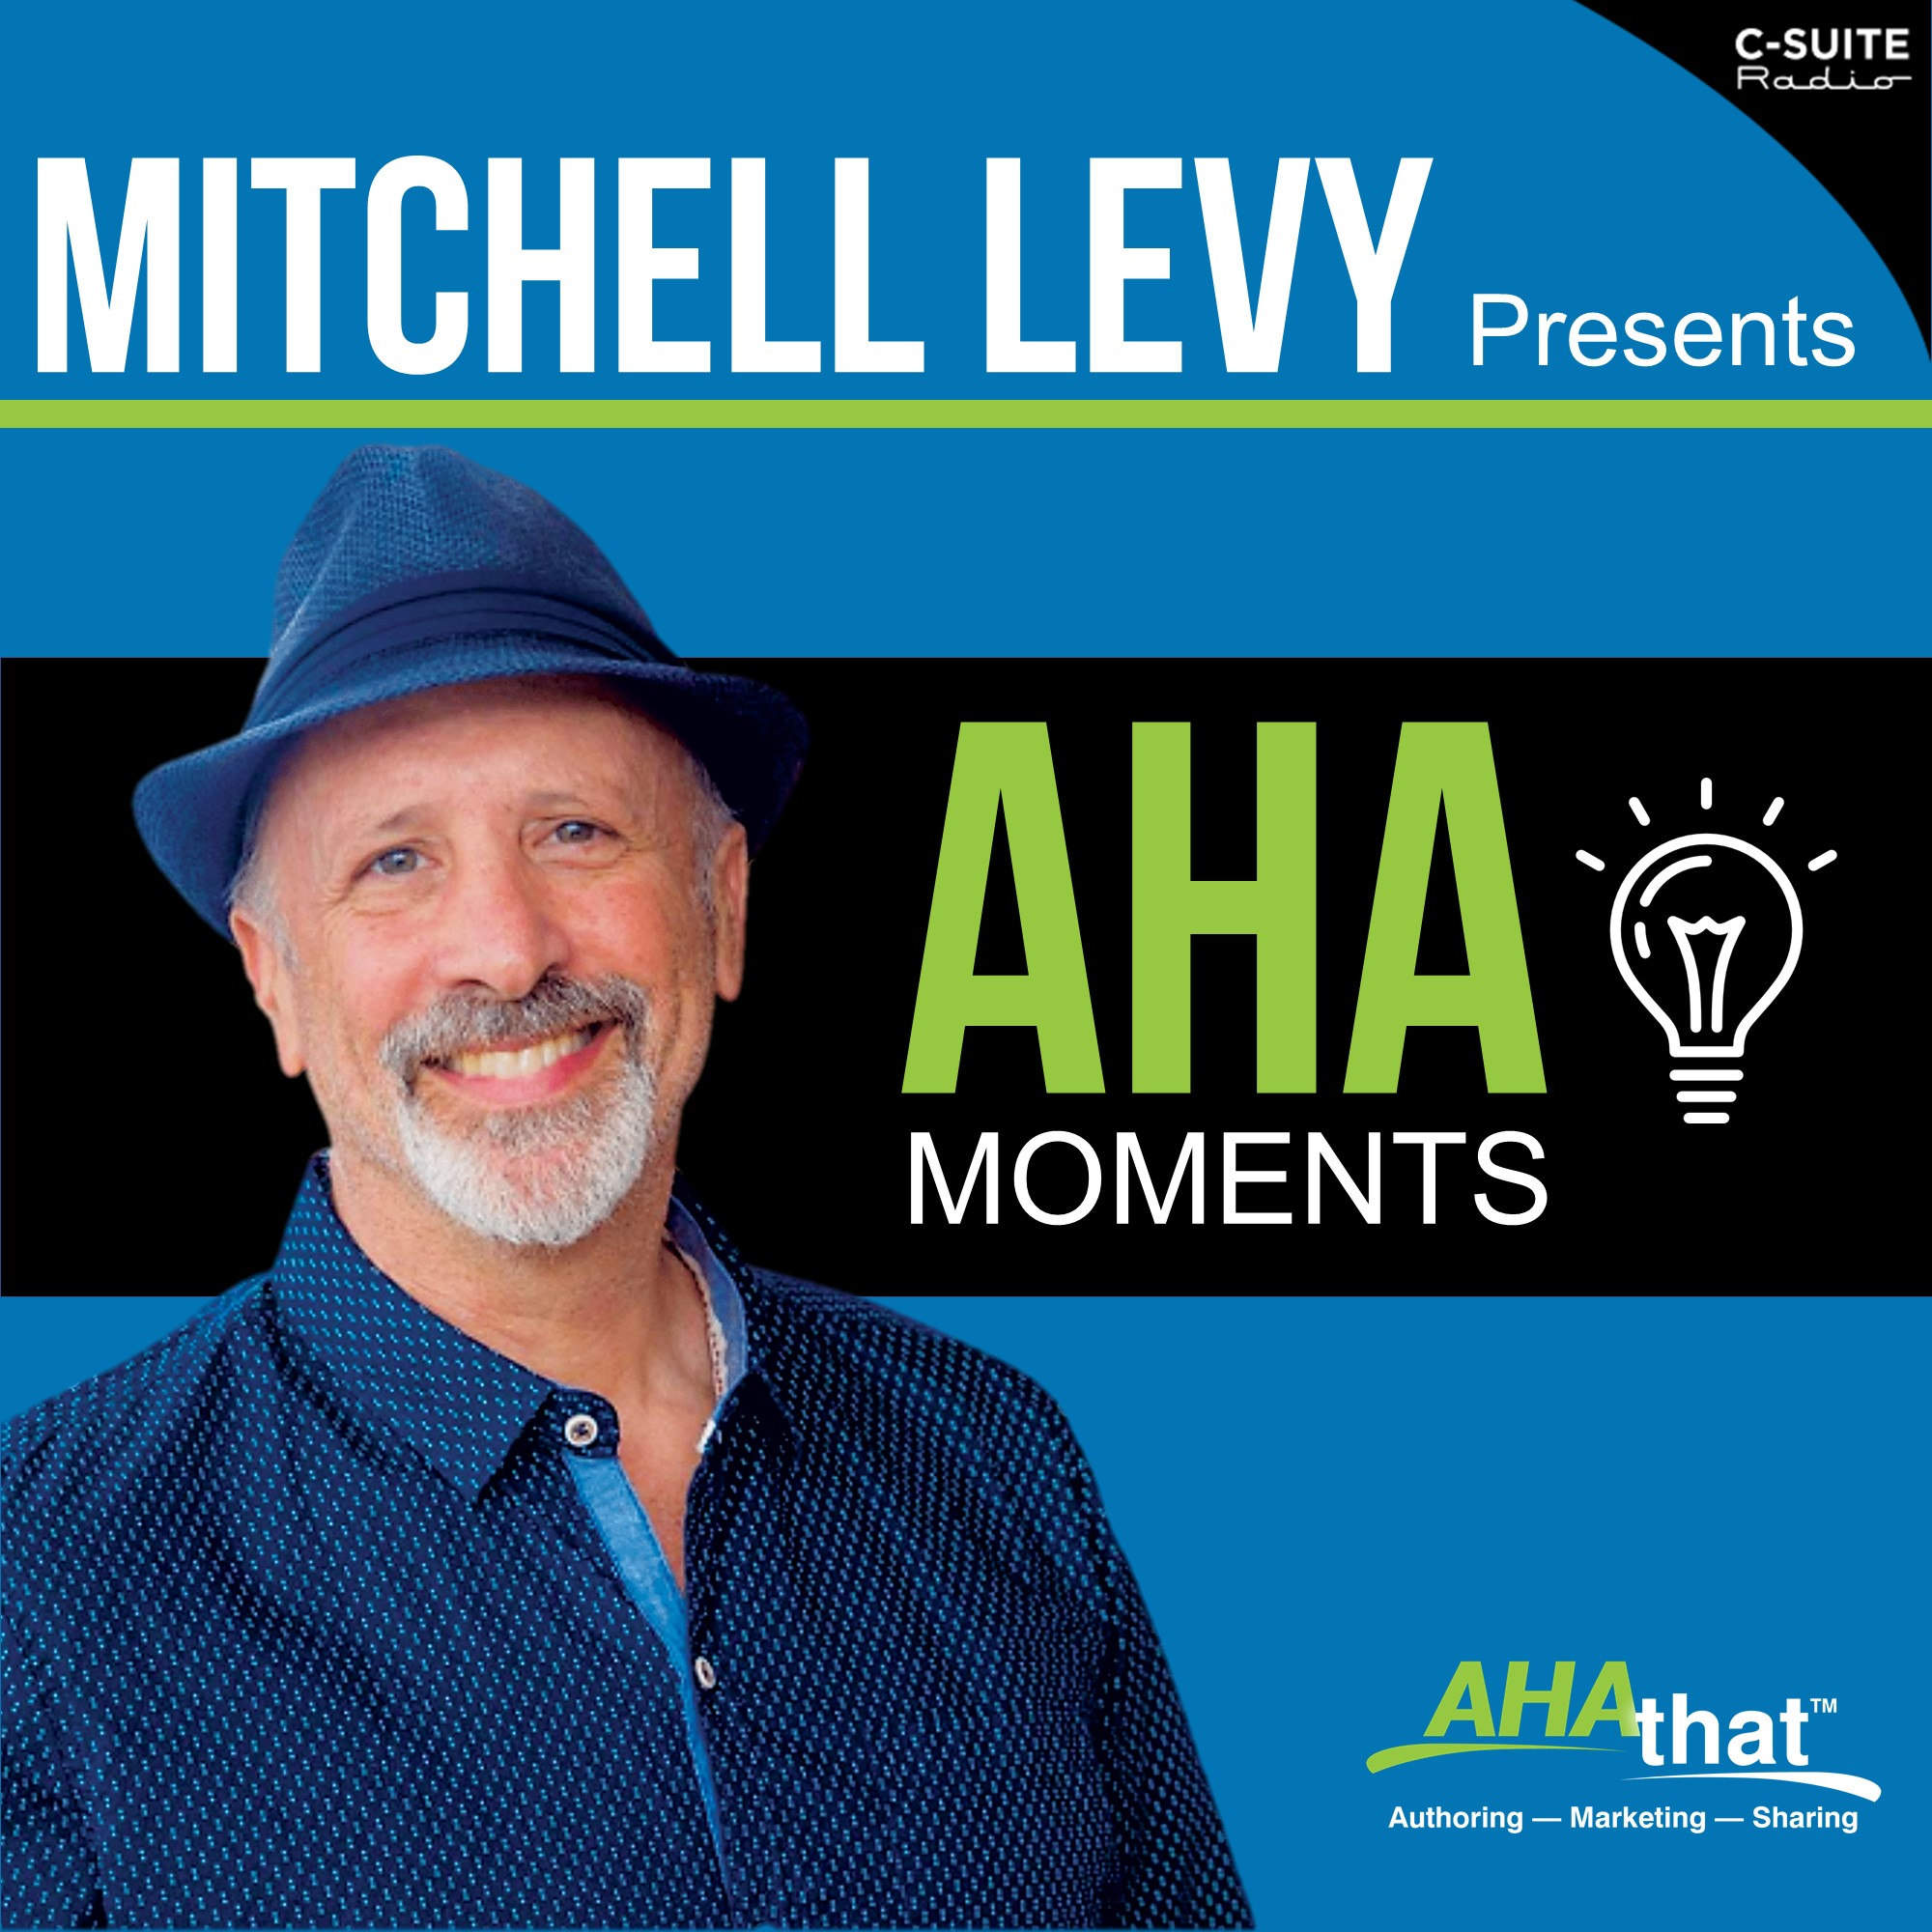 Mitchell Levy Presents AHA Moments